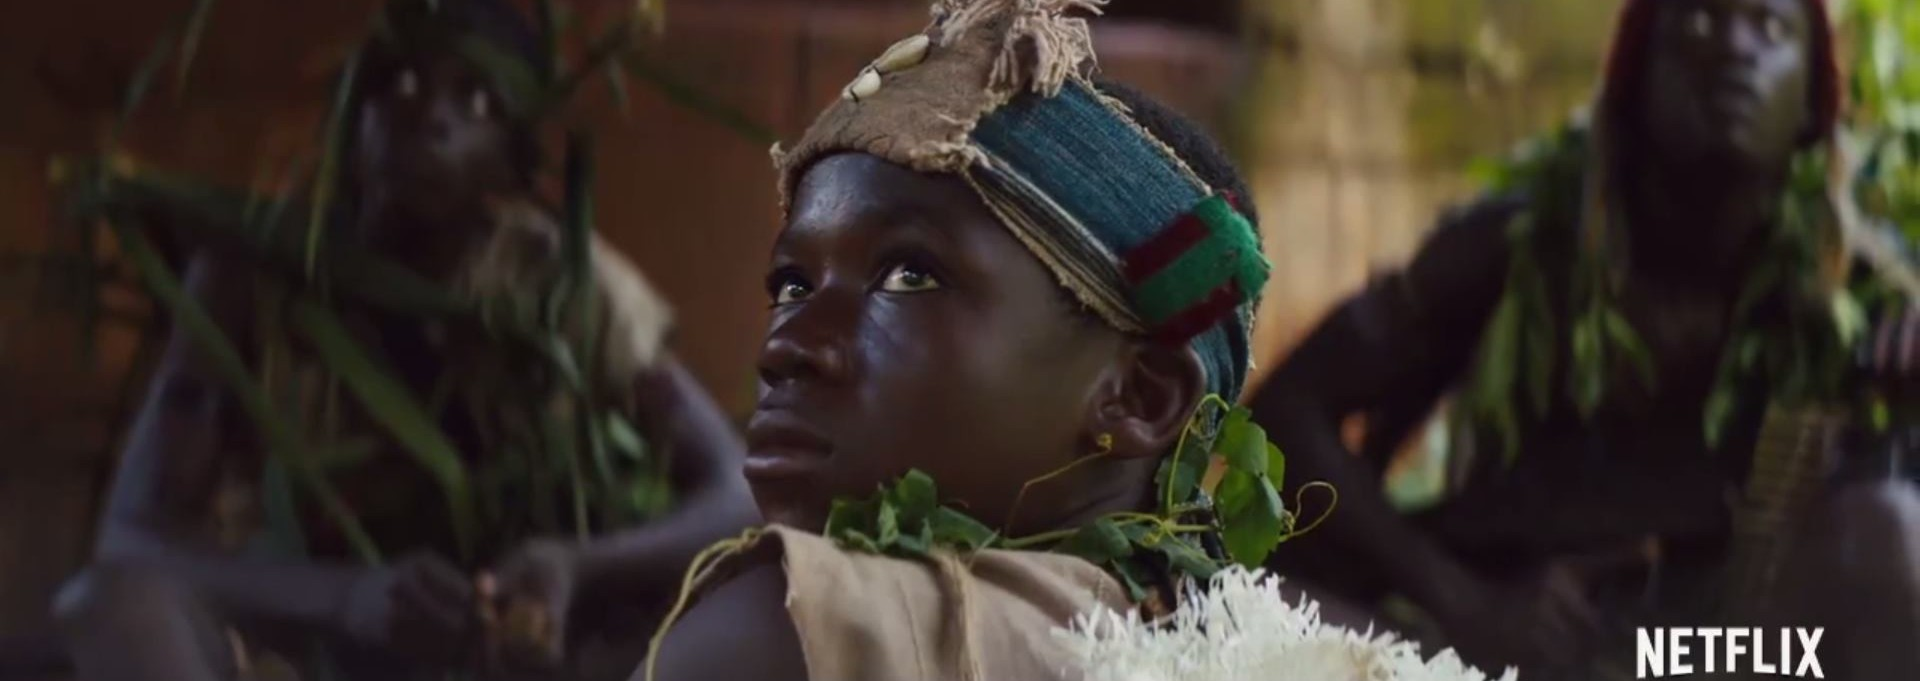 VIDEO: Izjave redatelja i glumaca te najava za film 'Beasts of No Nation'